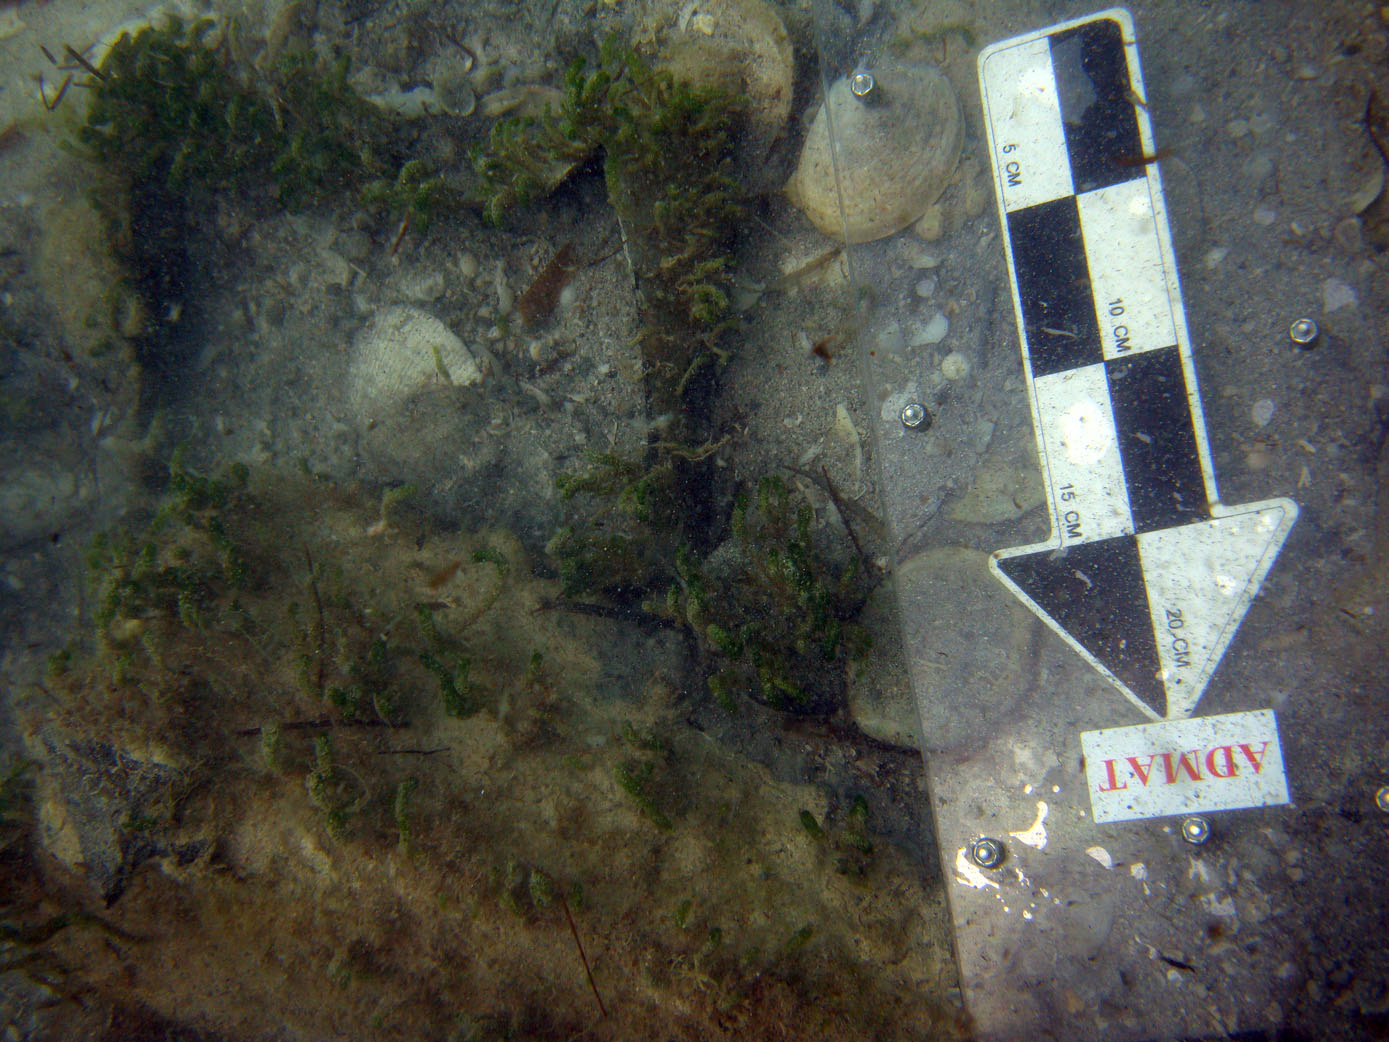 The lead box trapped by one of the iron ballast blocks